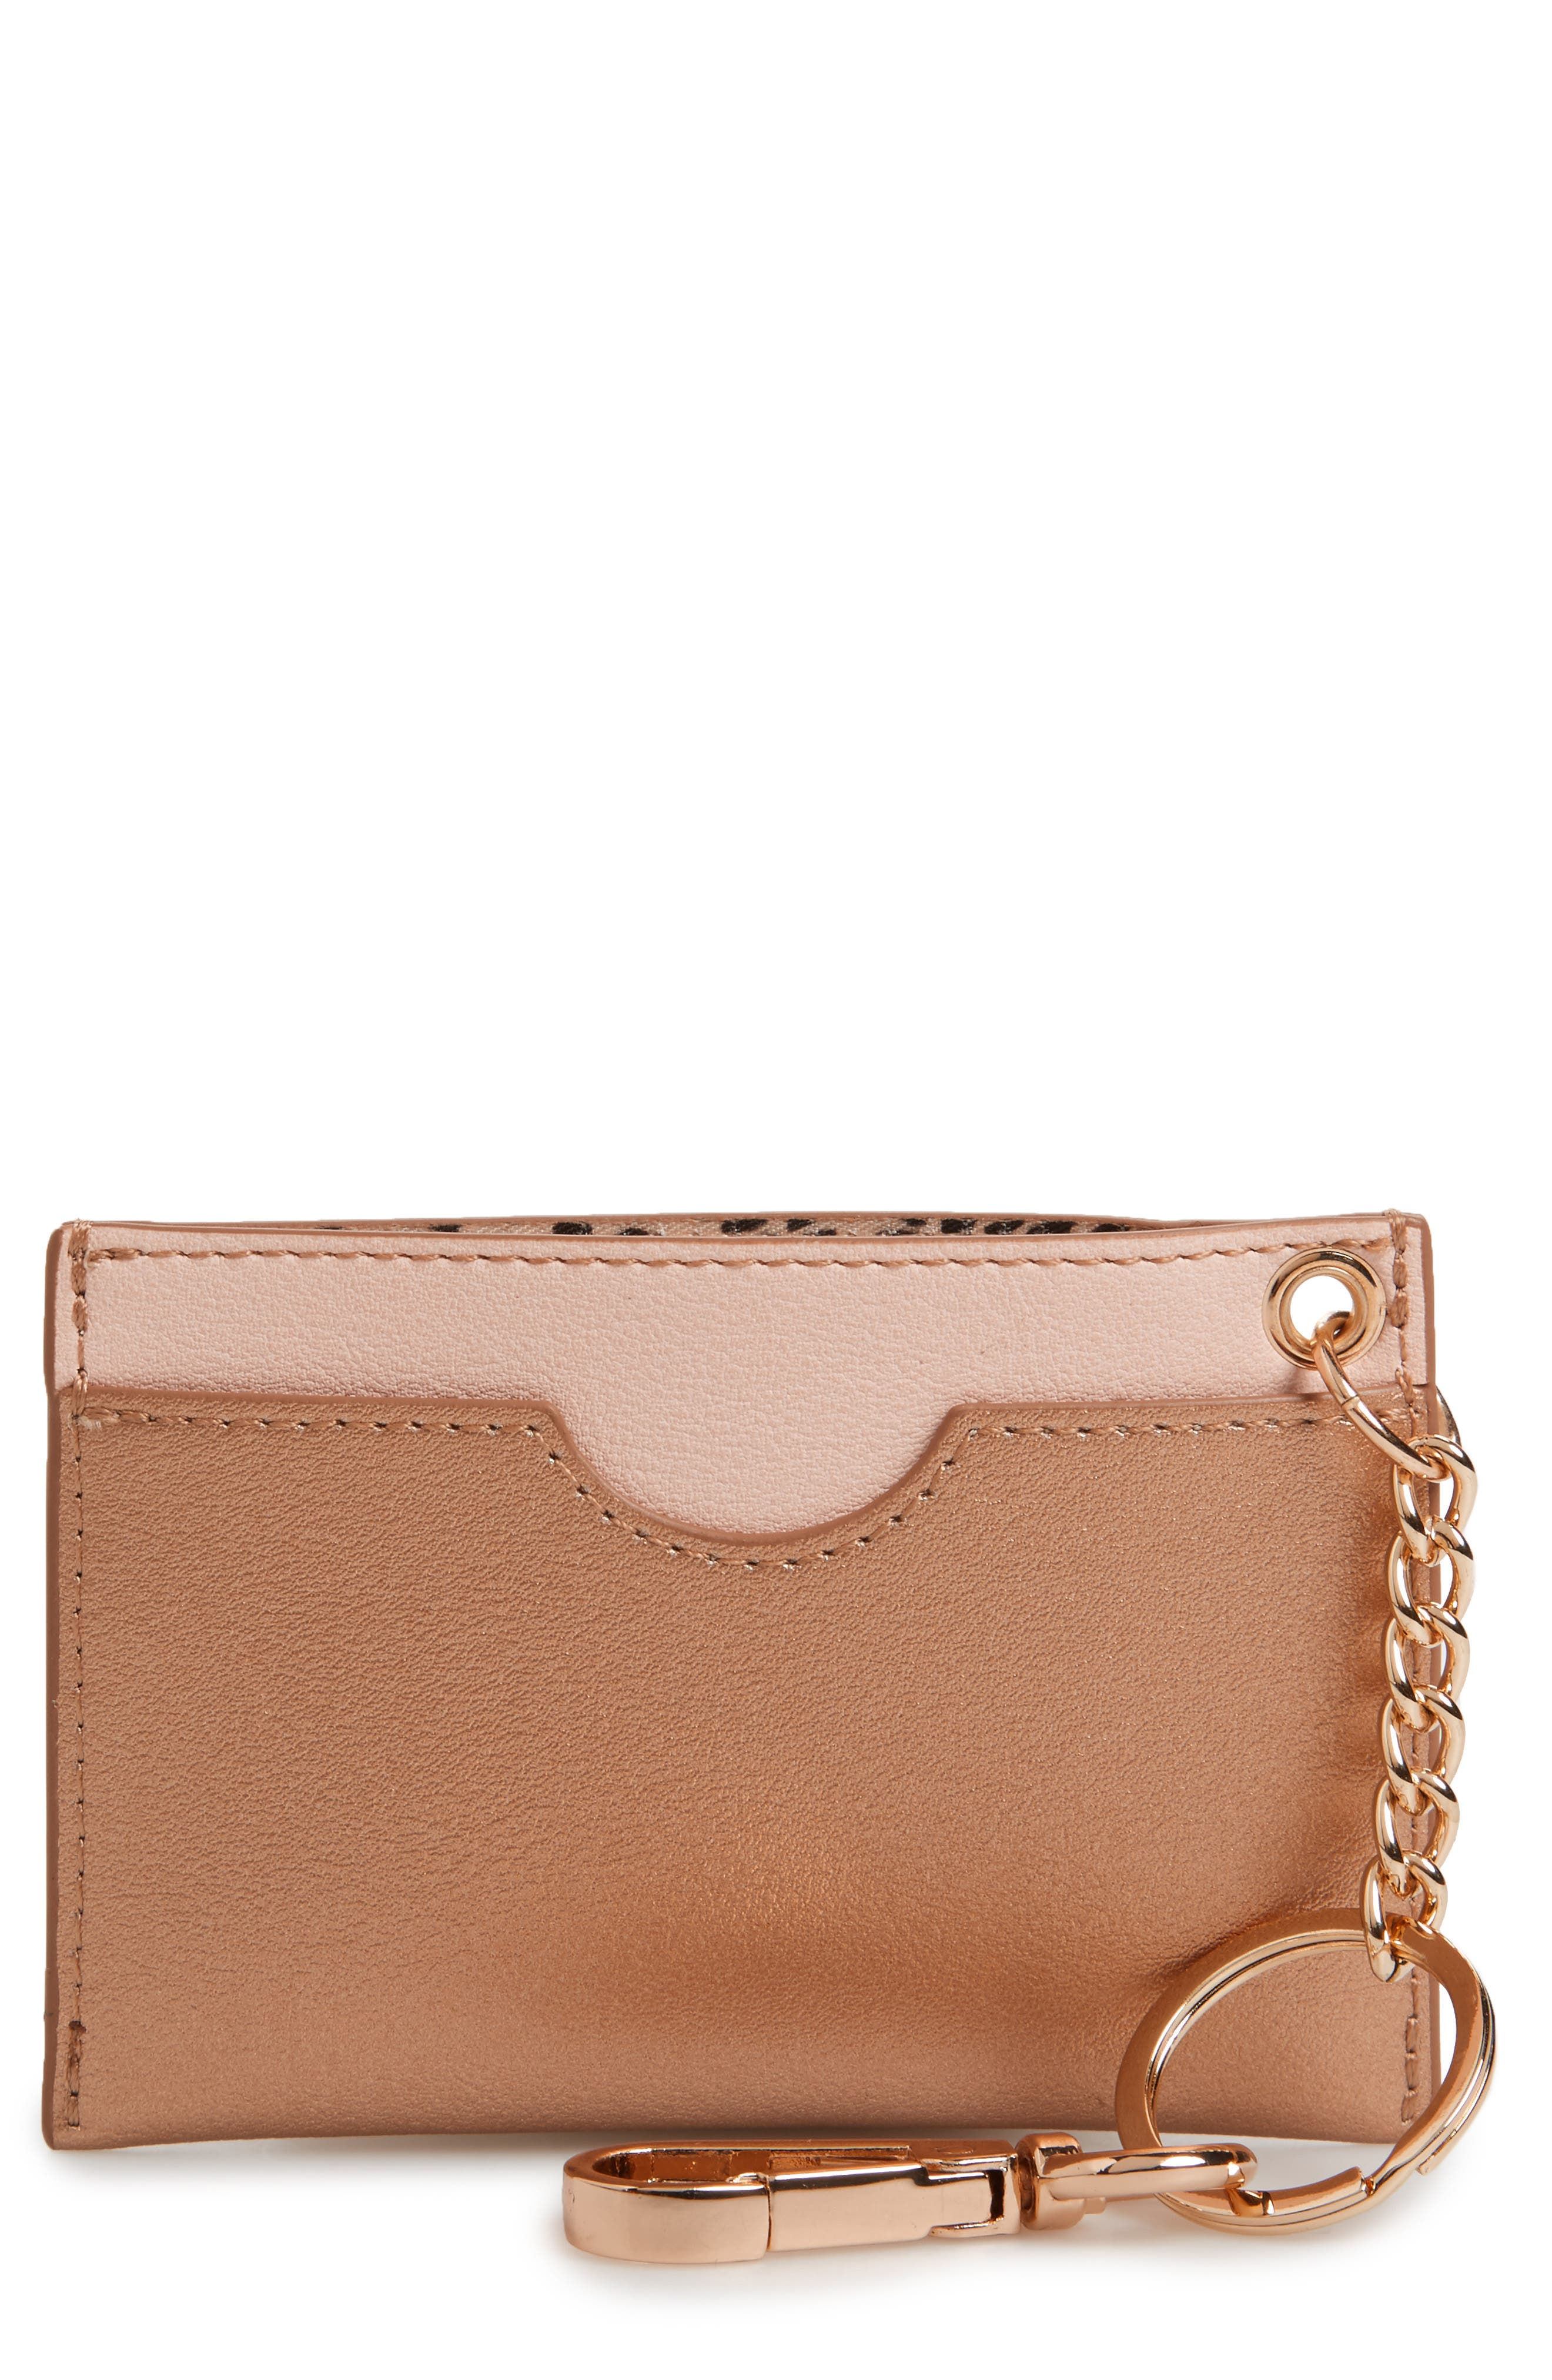 Alternate Image 1 Selected - BP. Metallic Faux Leather Key Chain Card Case